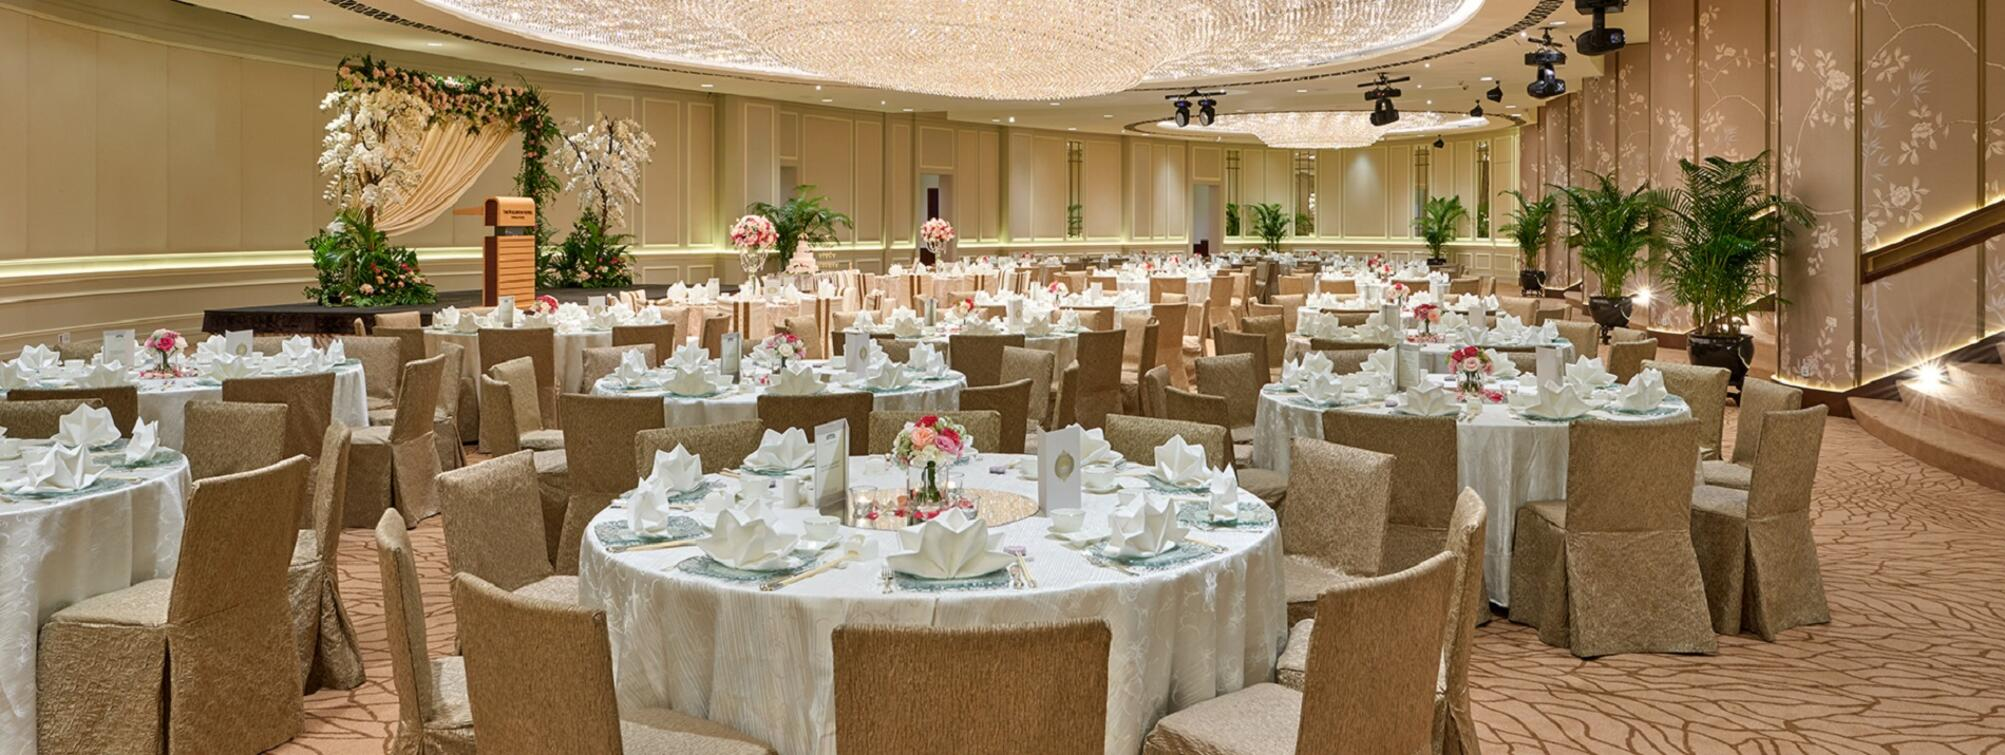 The arranged Ballroom with white tables and chairs for an event